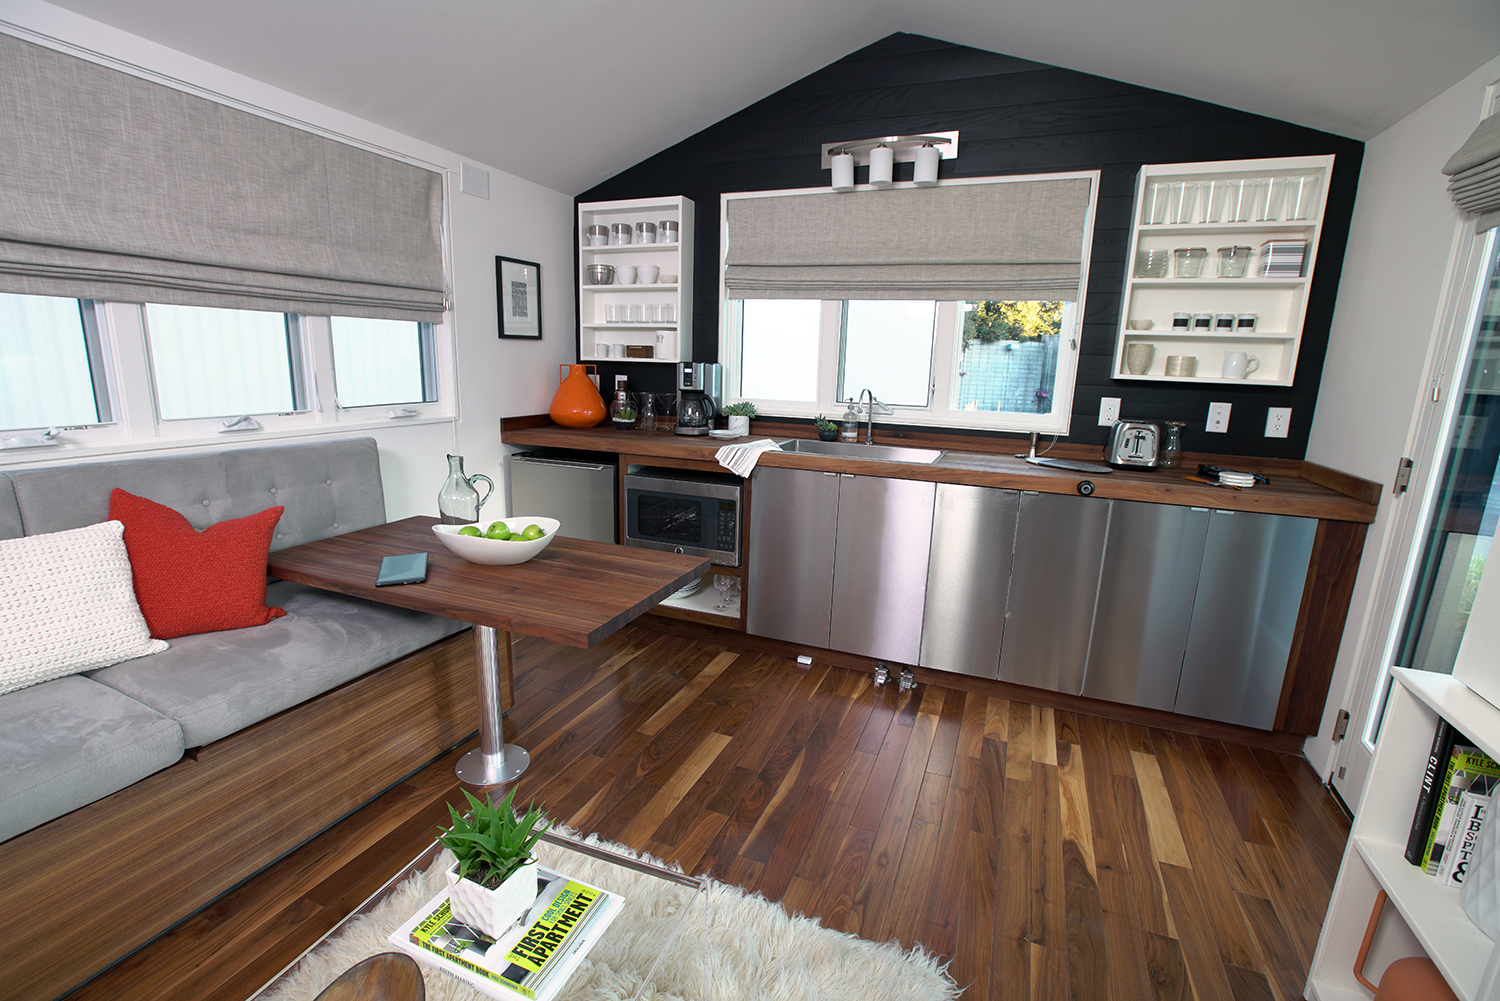 Intels 210 sq ft Smart Tiny Home The Shelter Blog